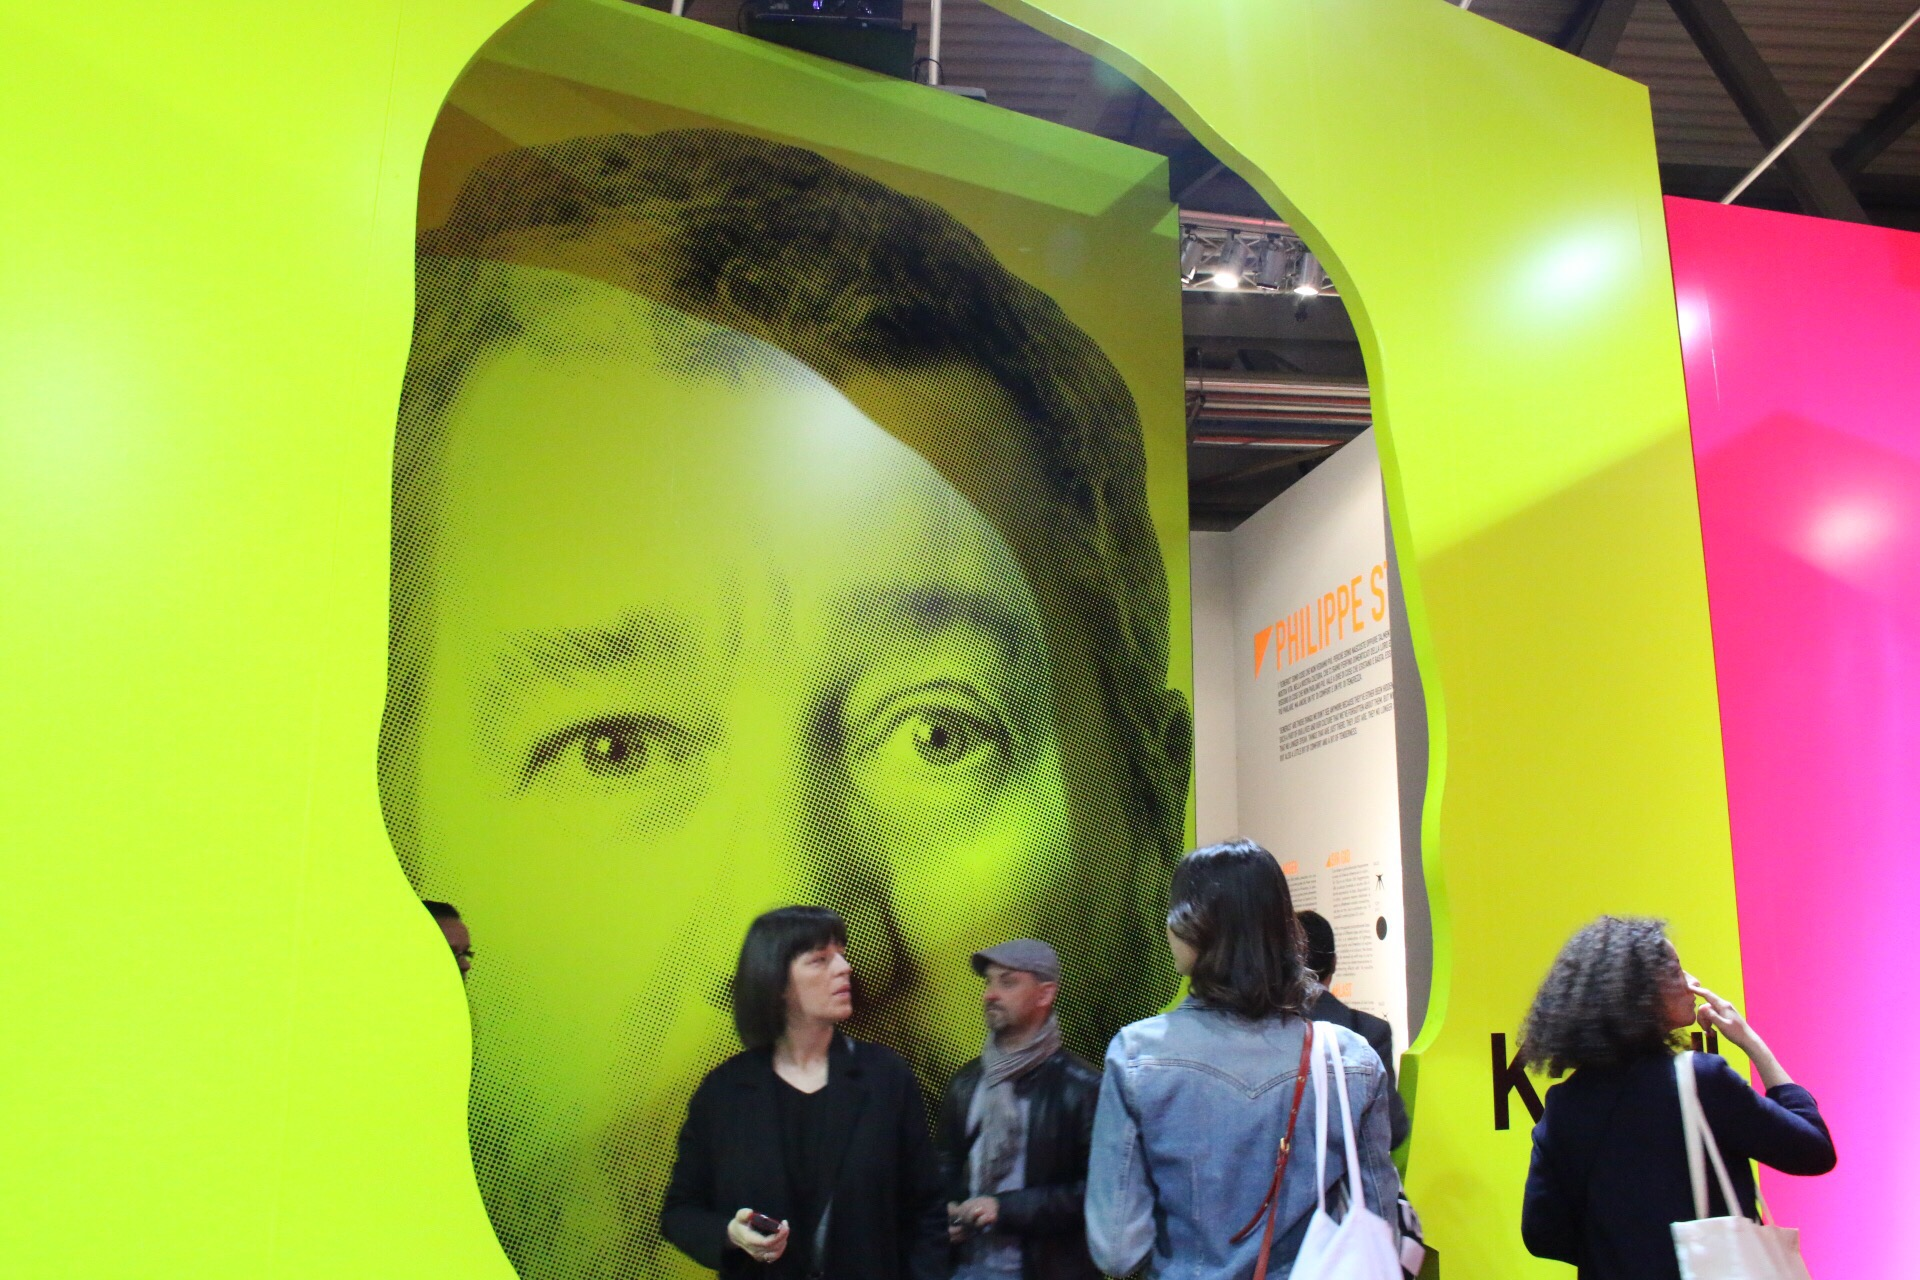 Kartell salone del mobile 2016 theoldnow for Salone mobile 2016